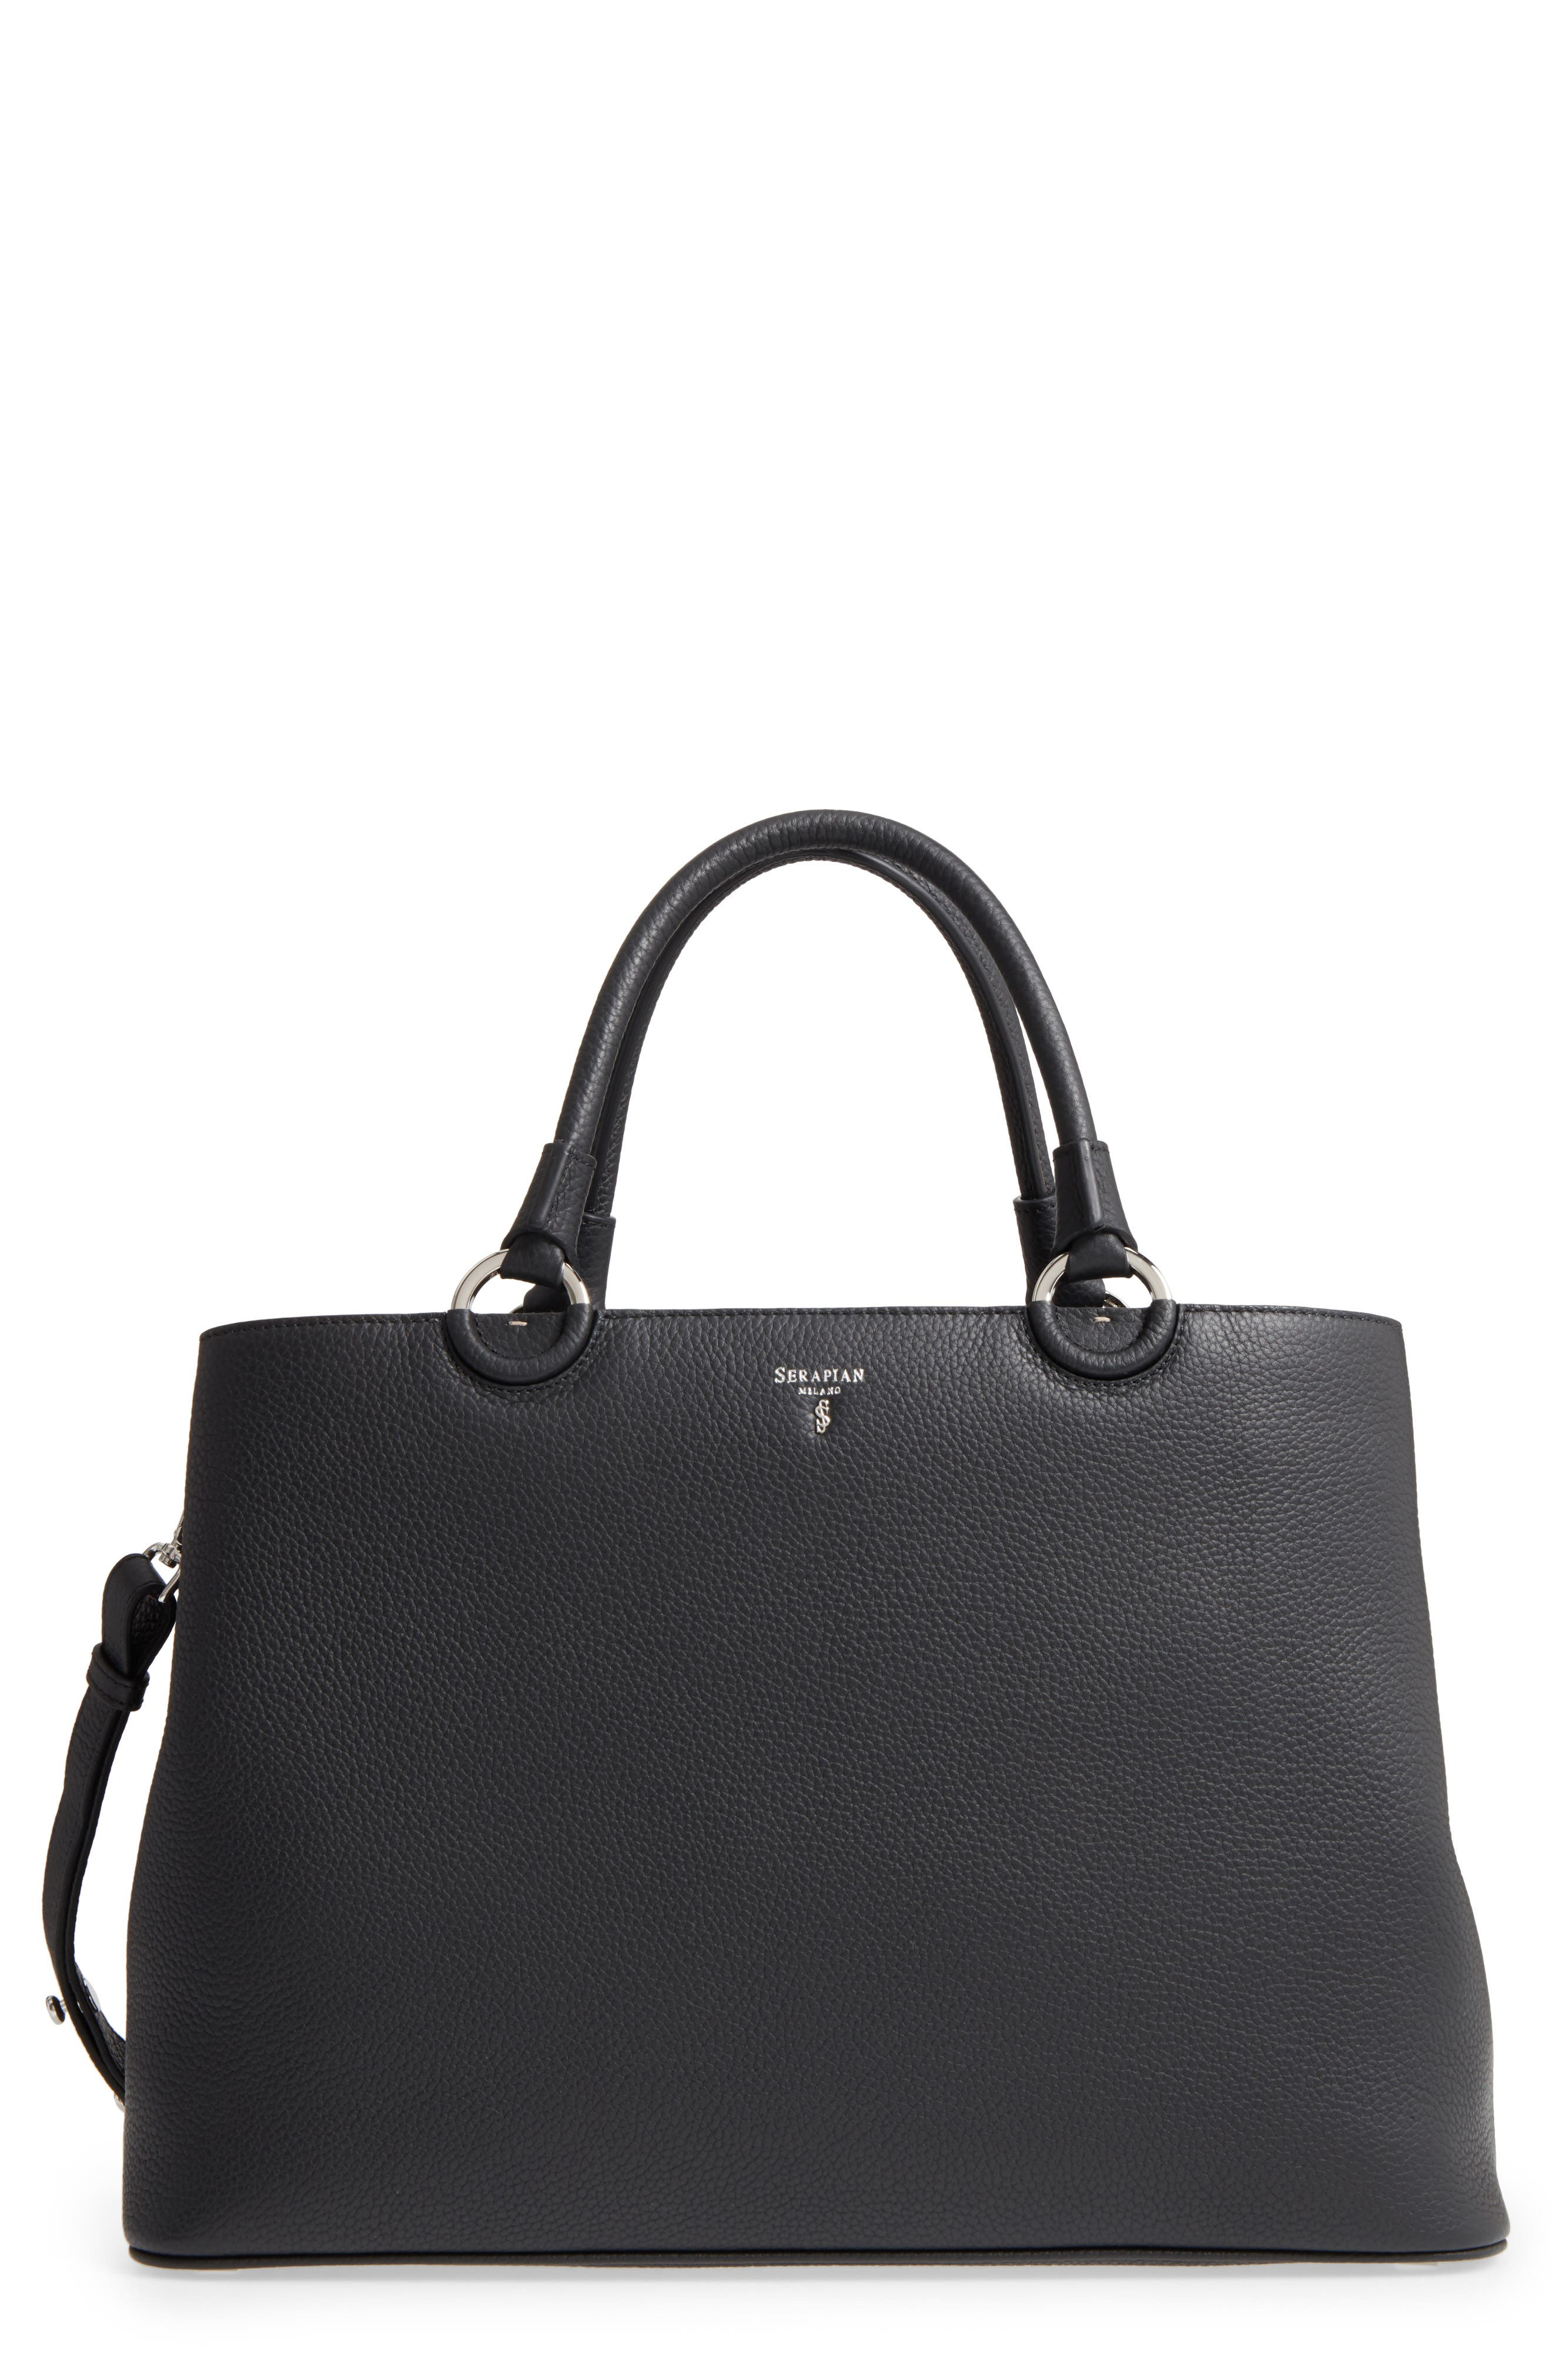 Veronica Cachemire Leather Tote,                             Main thumbnail 1, color,                             001